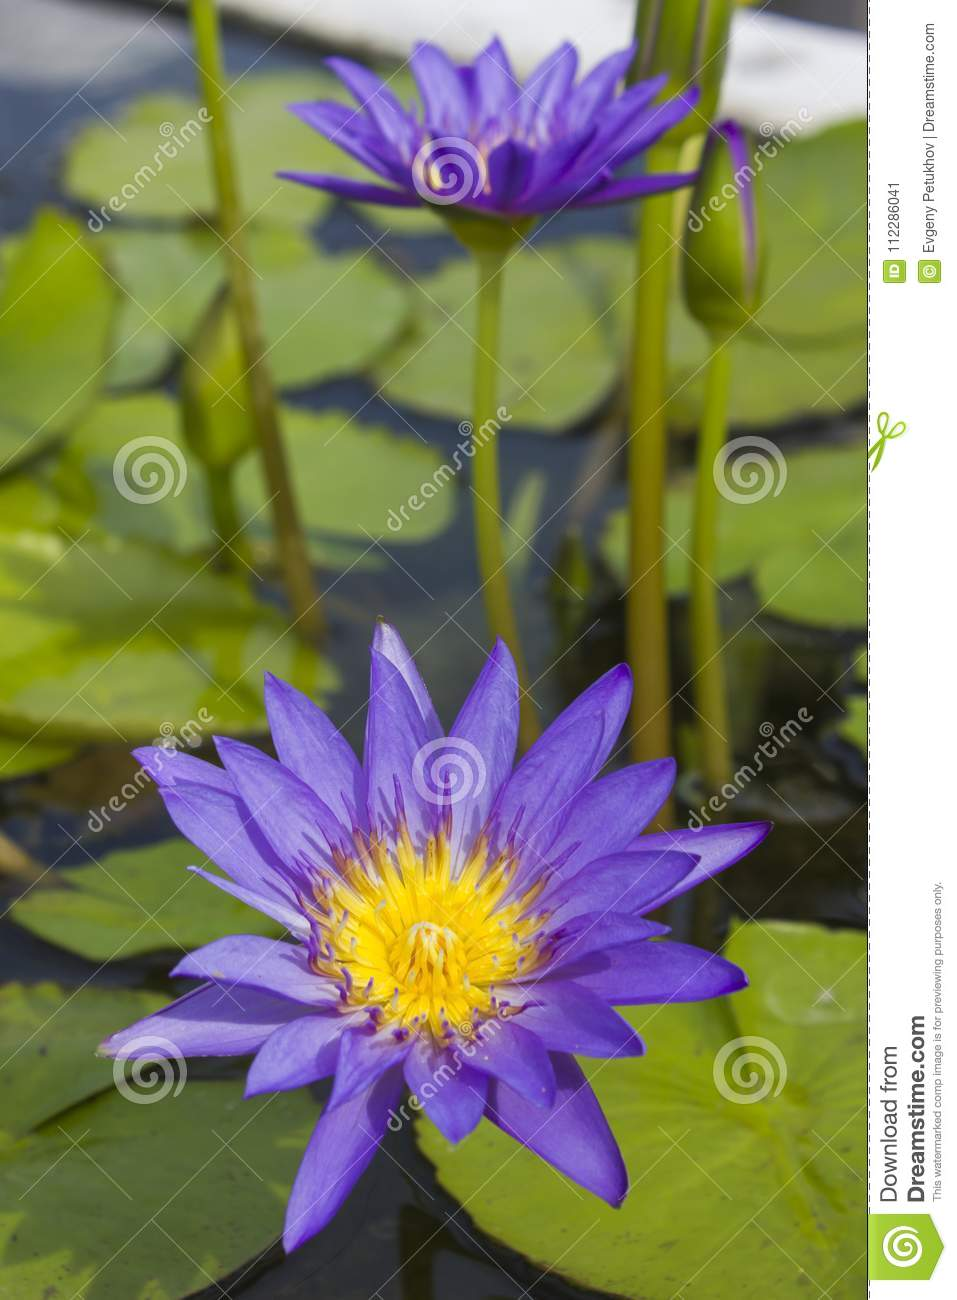 Elegant Blue Lily Flower Lotus In Water The Lotus Flower Water Lily